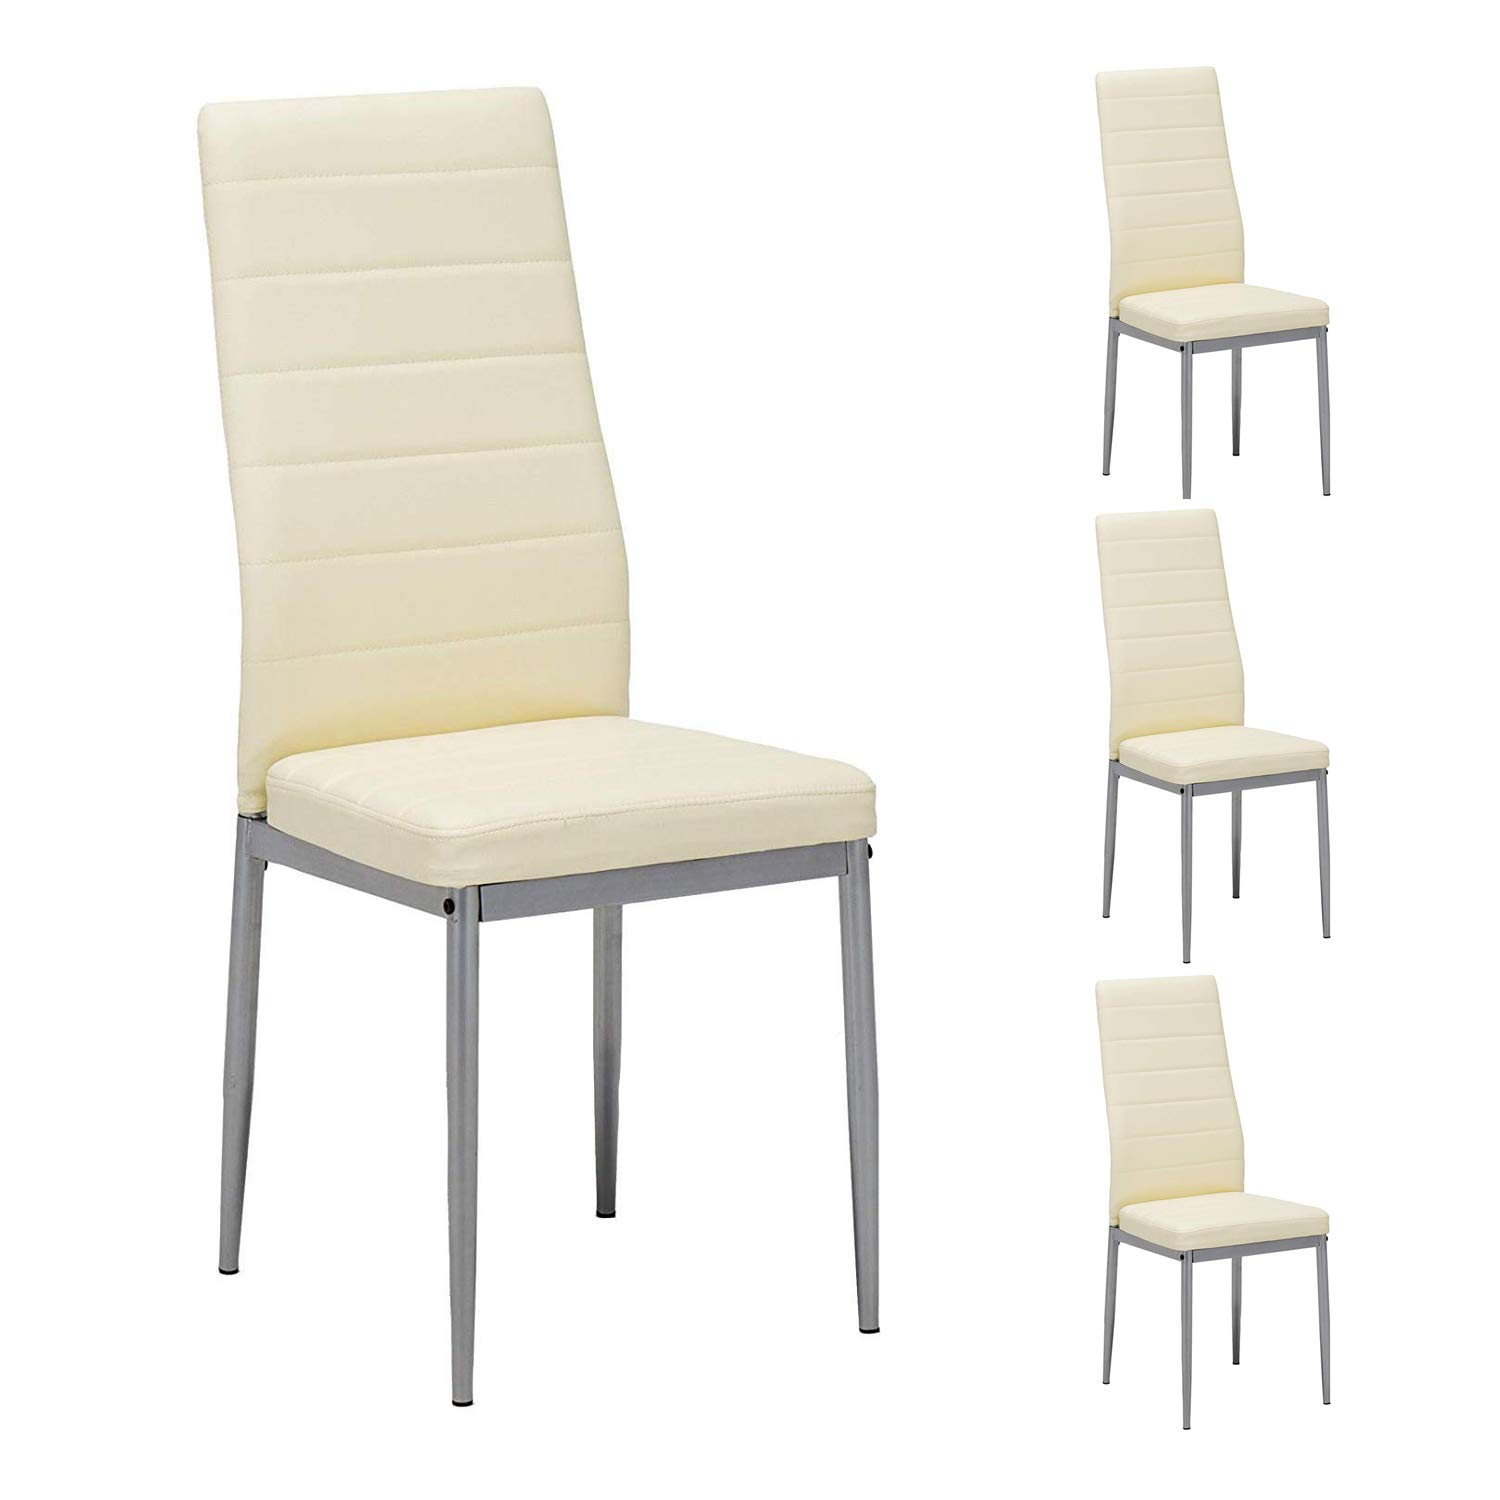 Yellow Dining Room Chairs: Chair Pads & Cushions